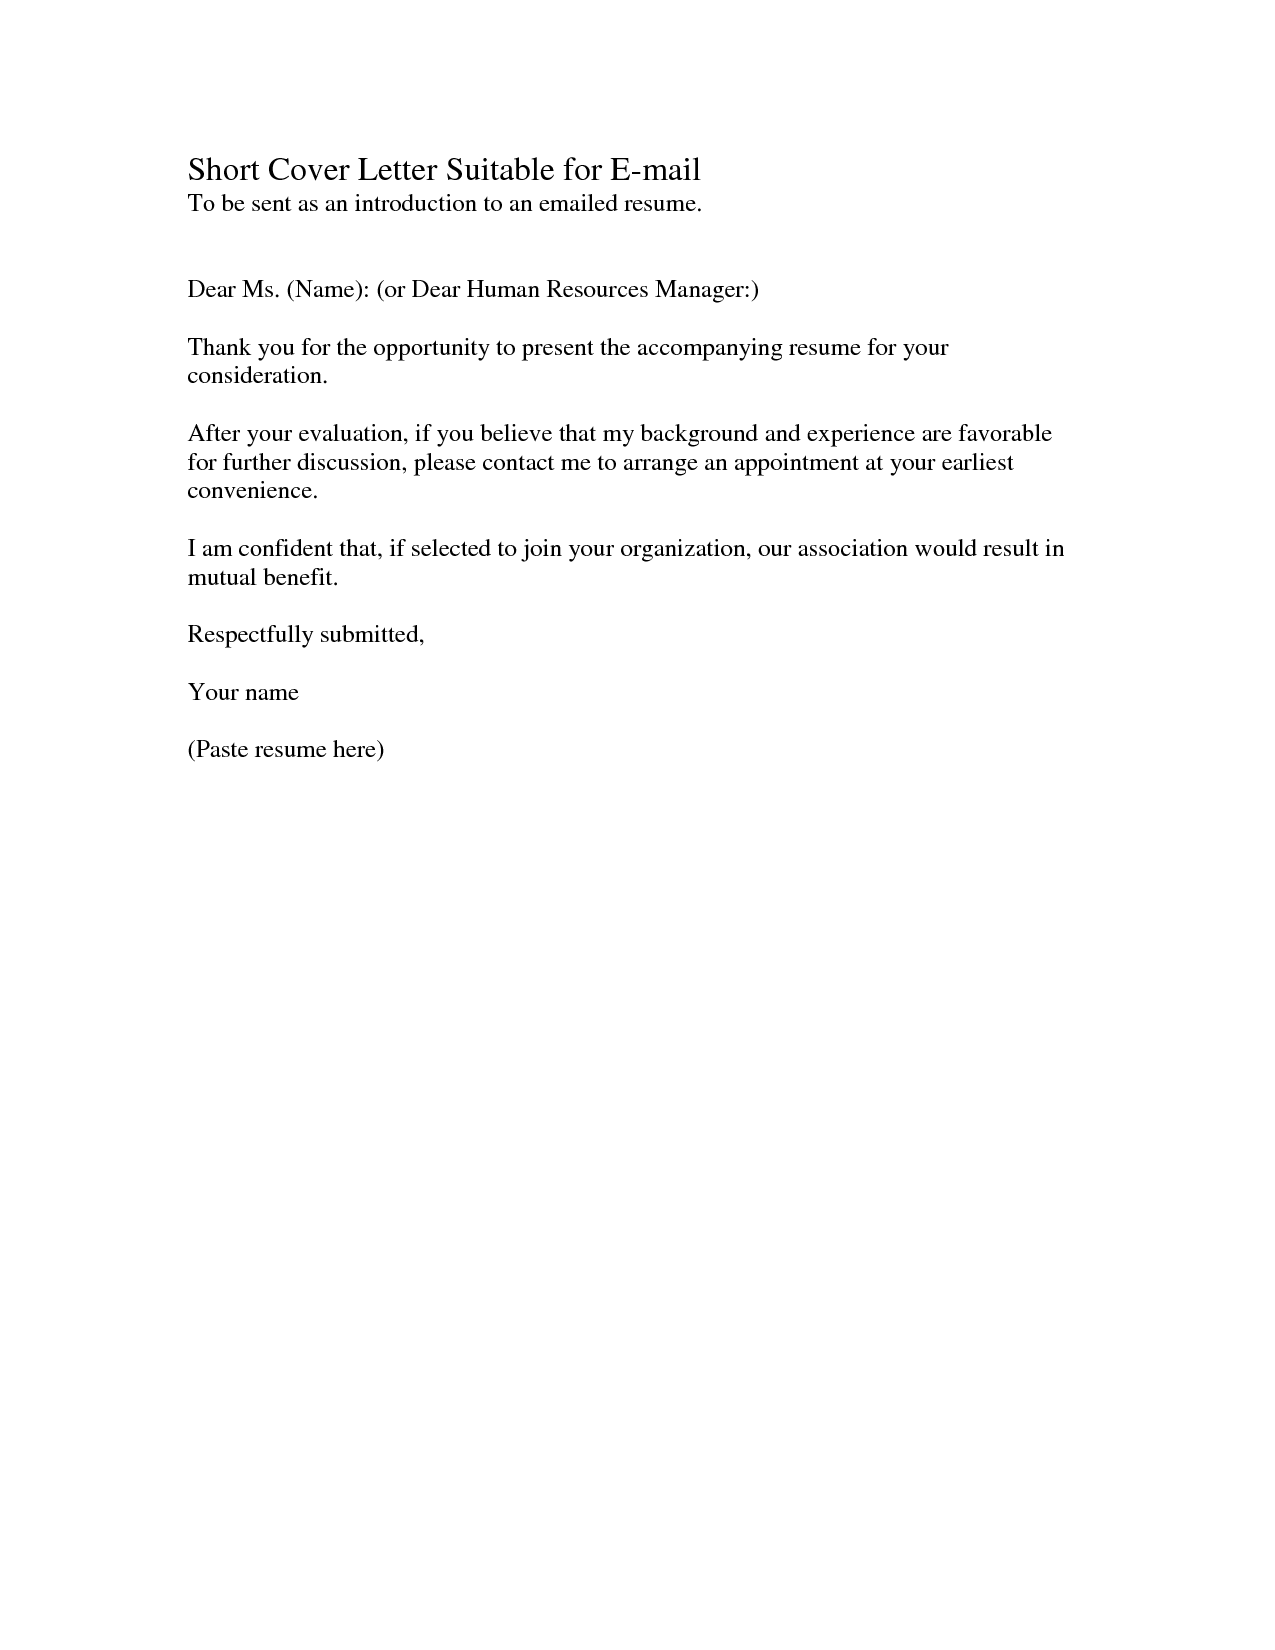 Title Cover Letter Resume Greeting Name Sample Good Titles